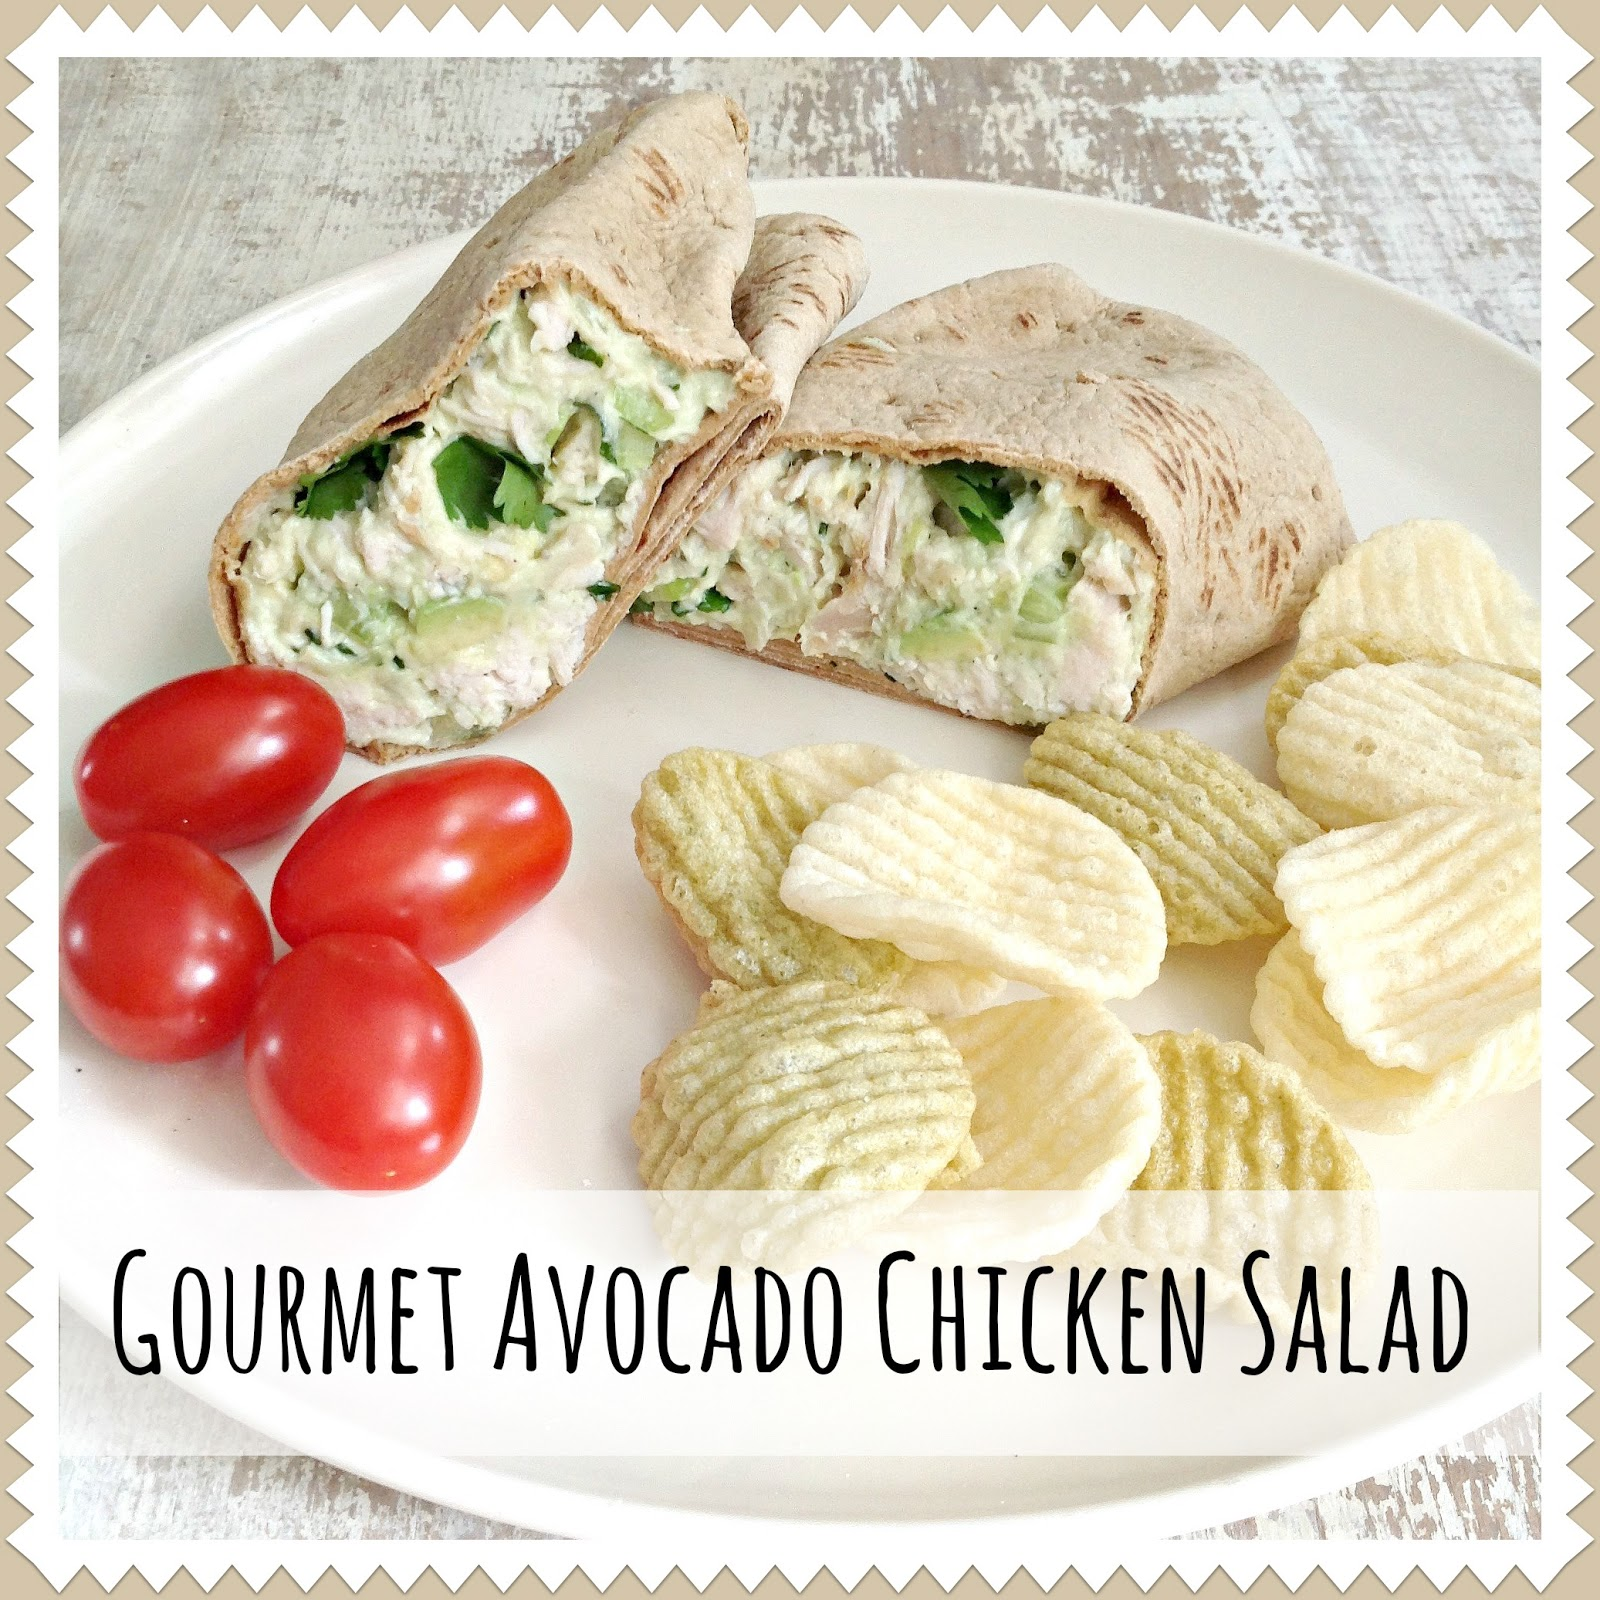 Gourmet Avocado Chicken Salad